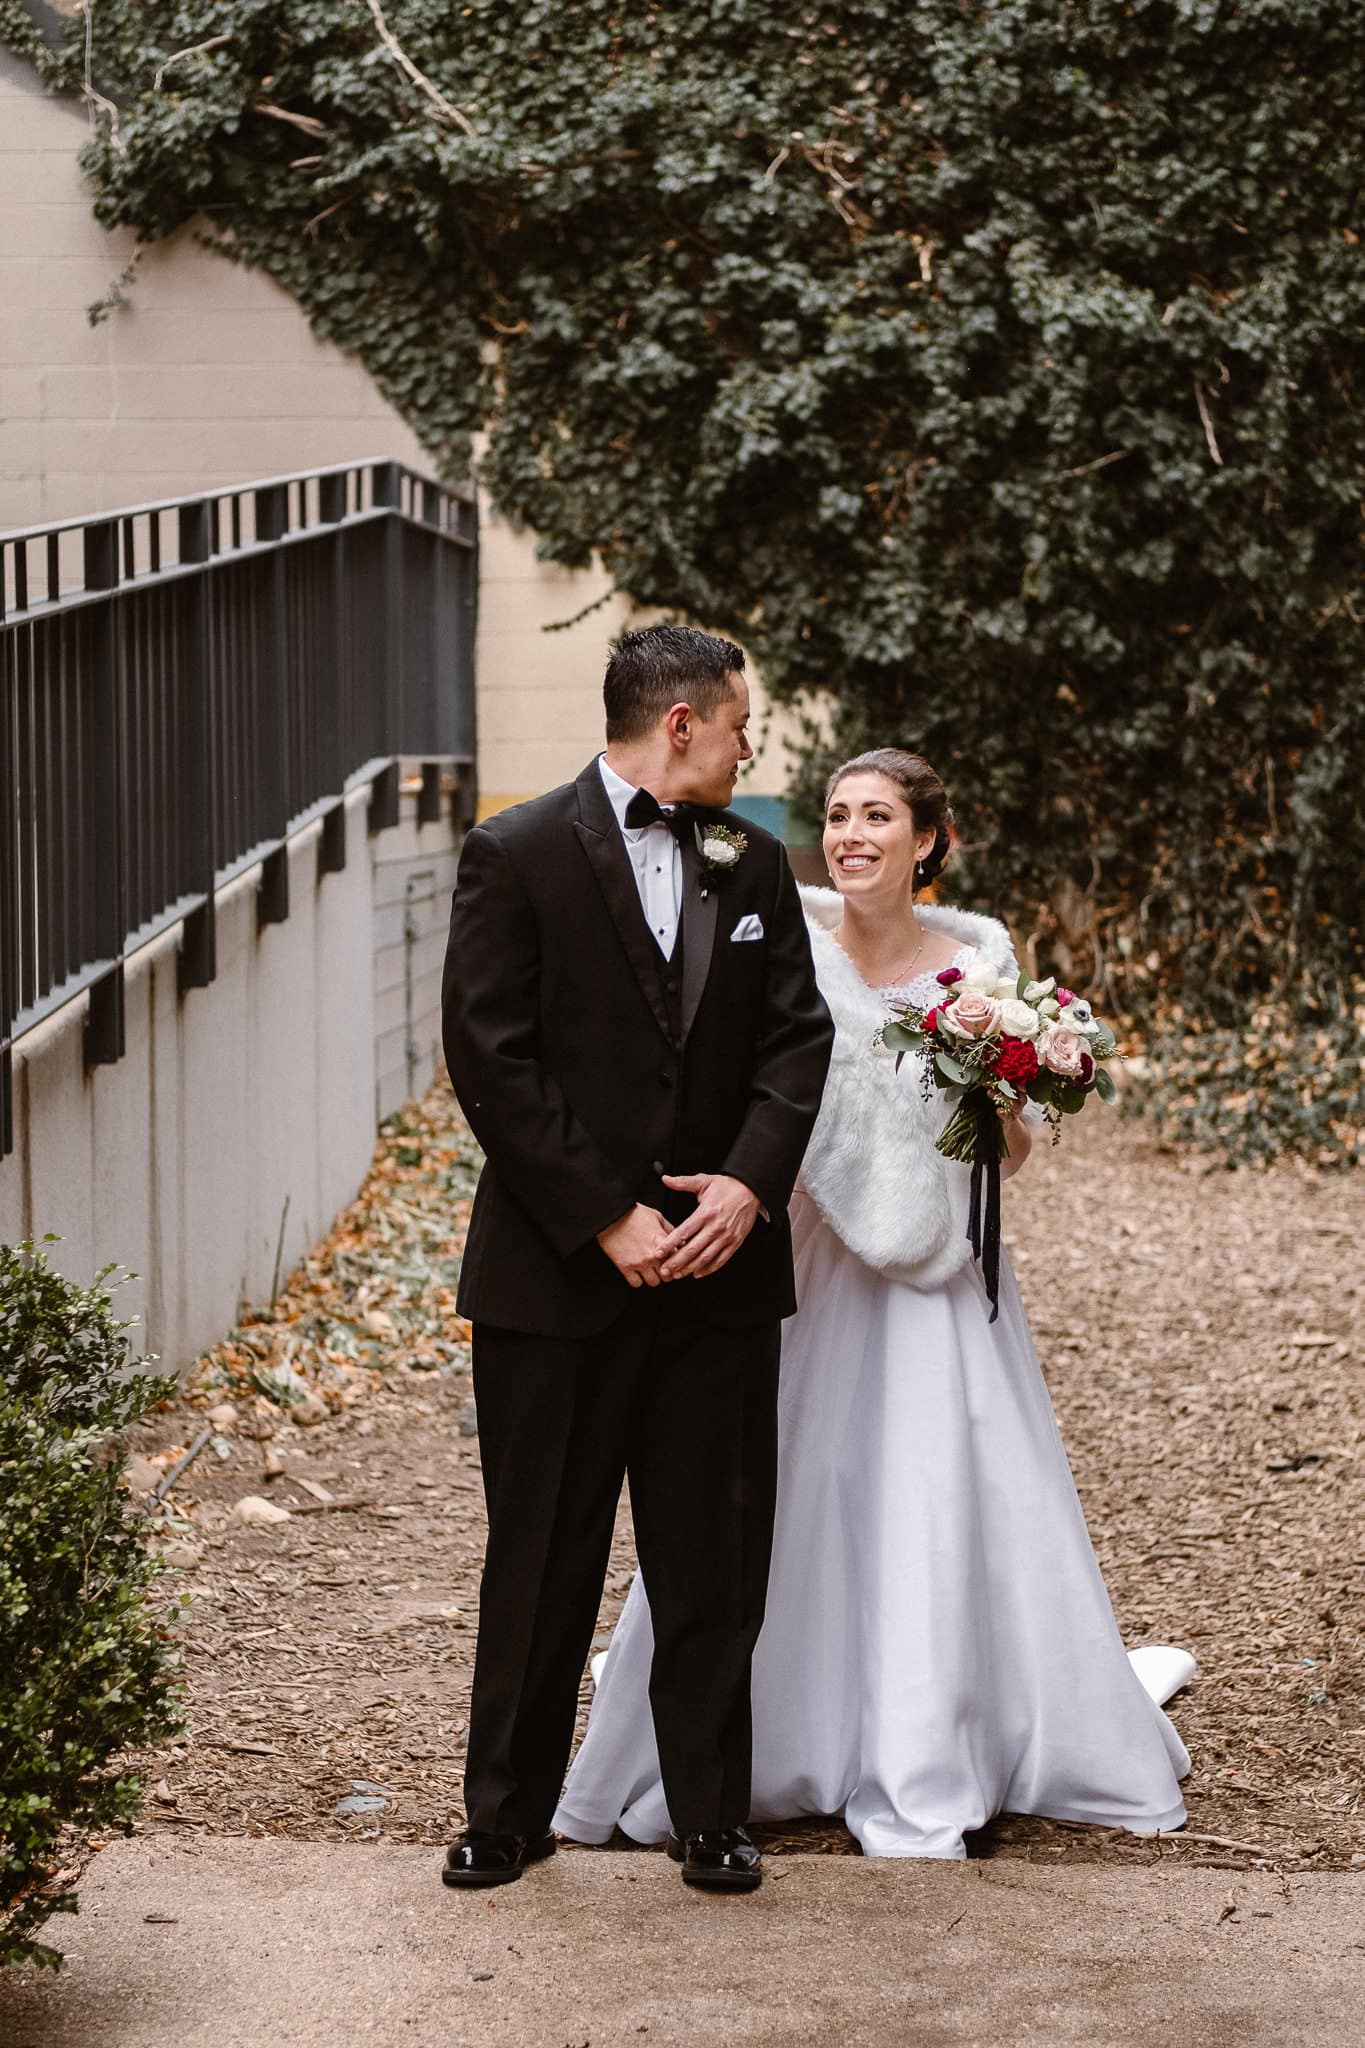 Rembrandt Yard wedding photographer, Boulder wedding photographer, Colorado Jewish wedding, bride and groom first look